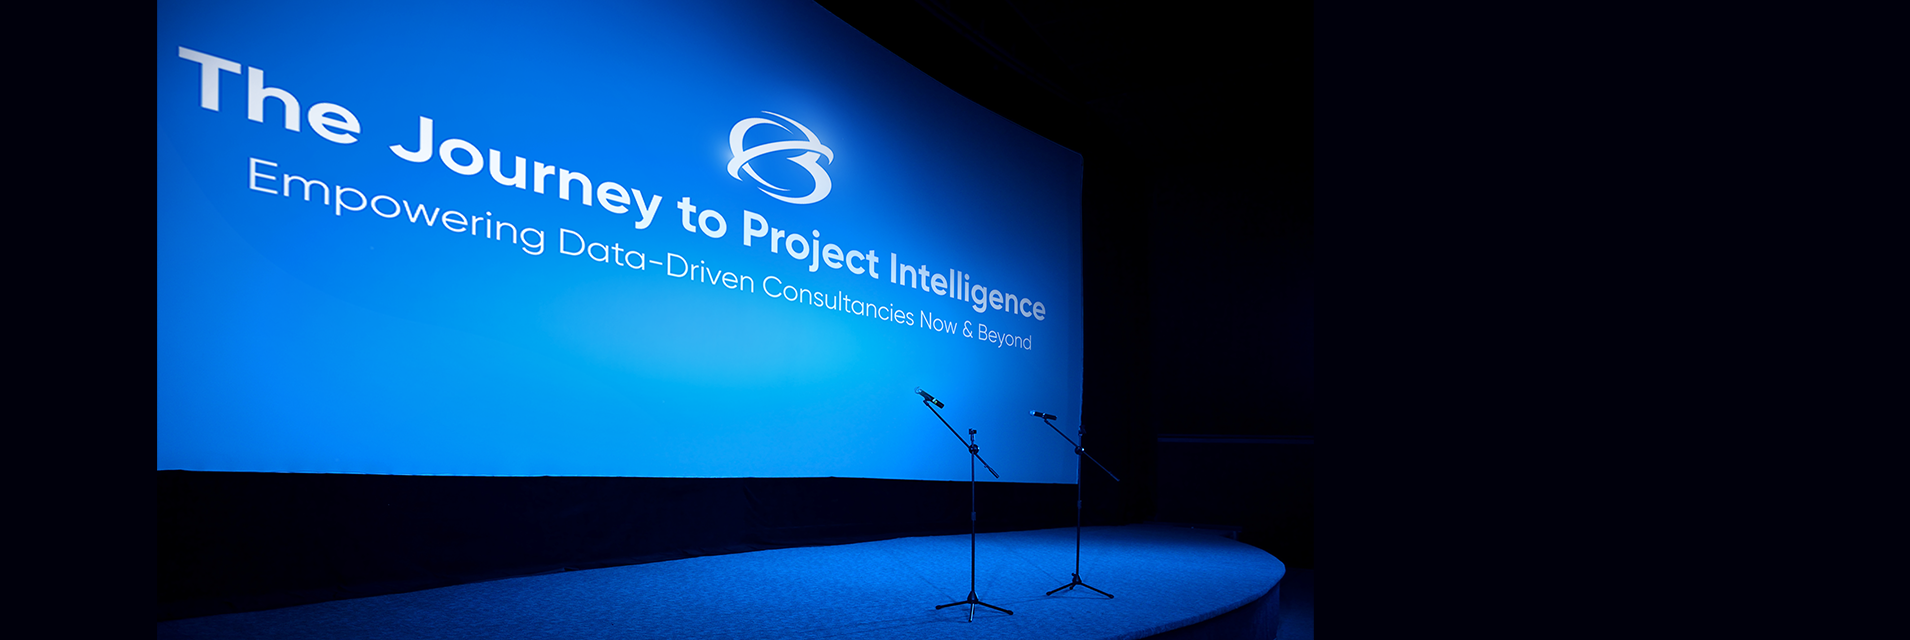 The Journey to Project Intelligence